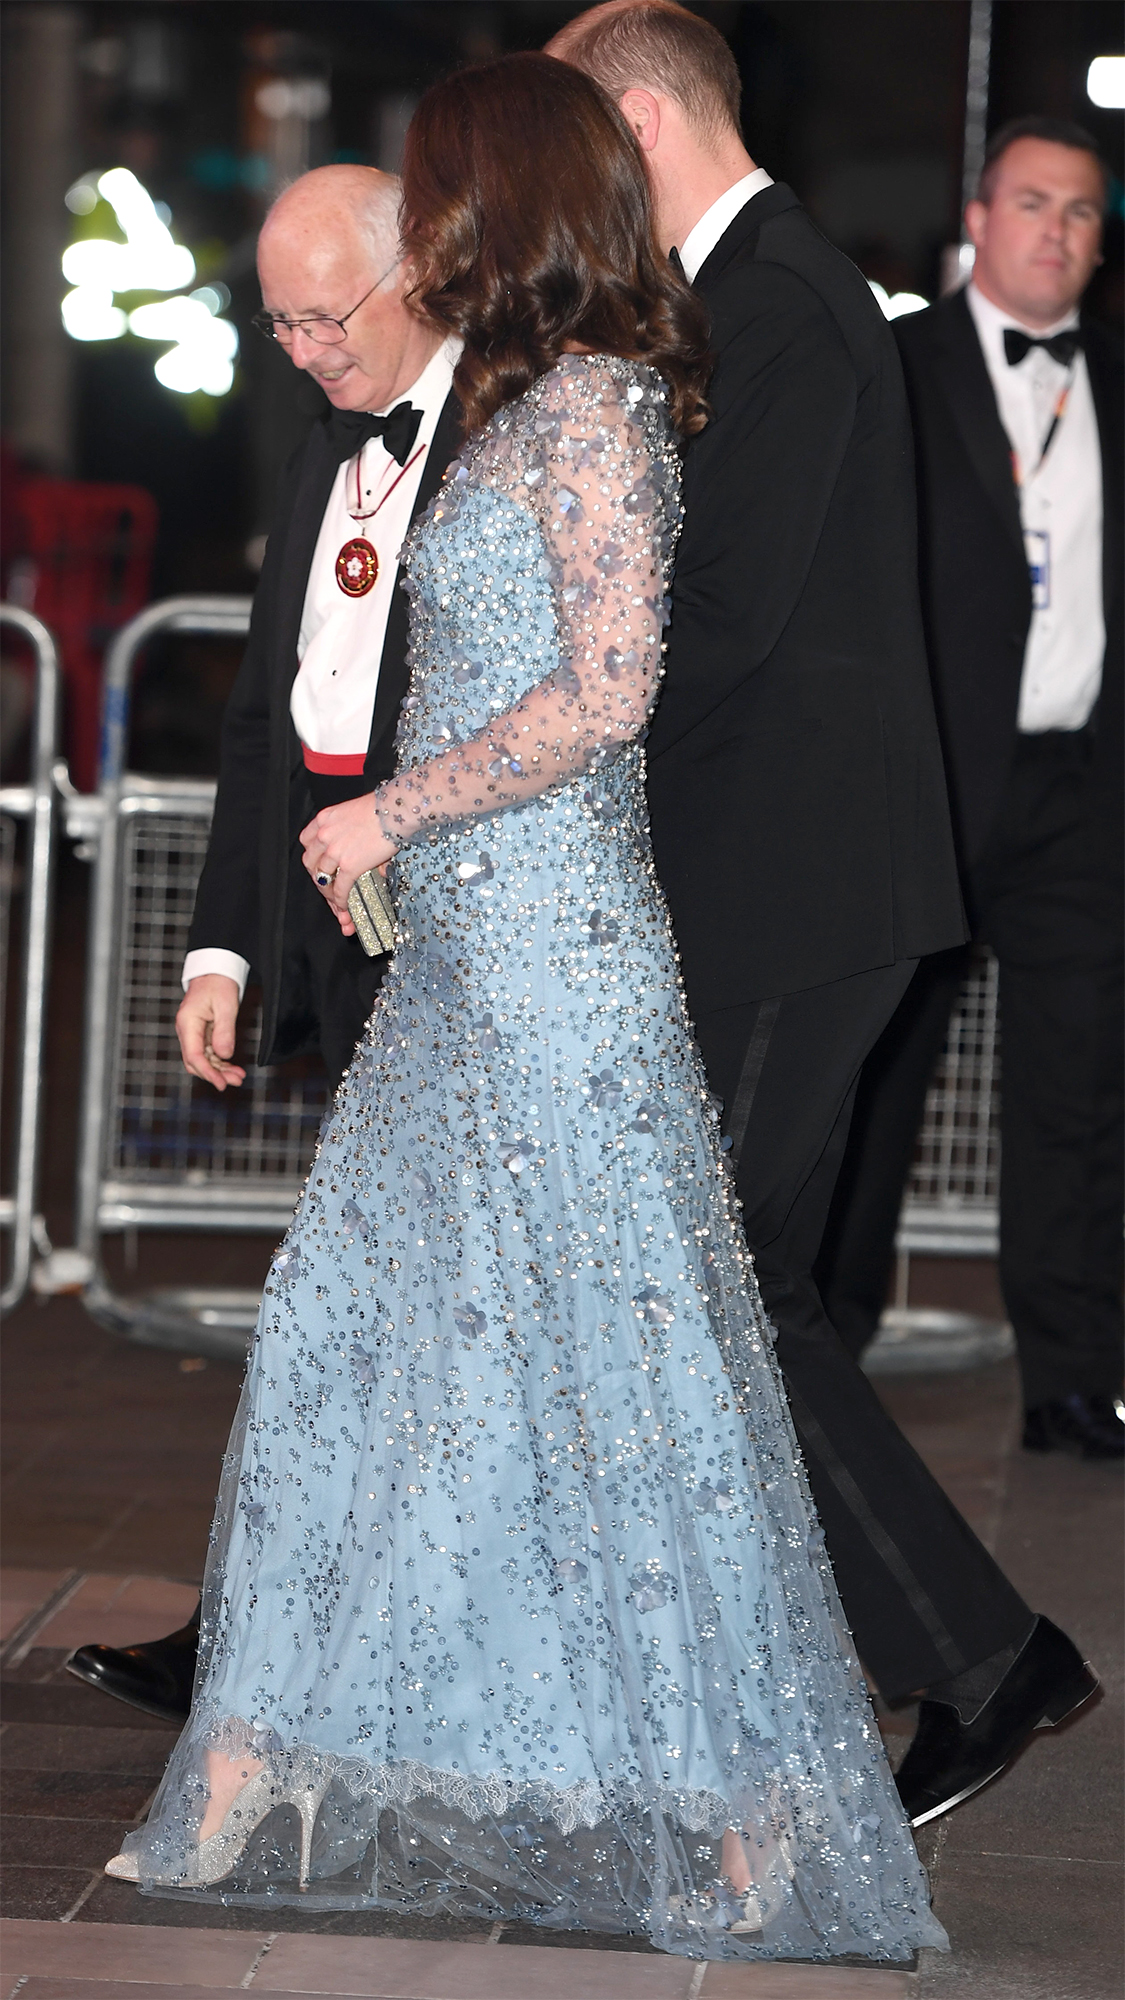 Duchess Kate Sparkles With Prince William at Royal Variety Performance